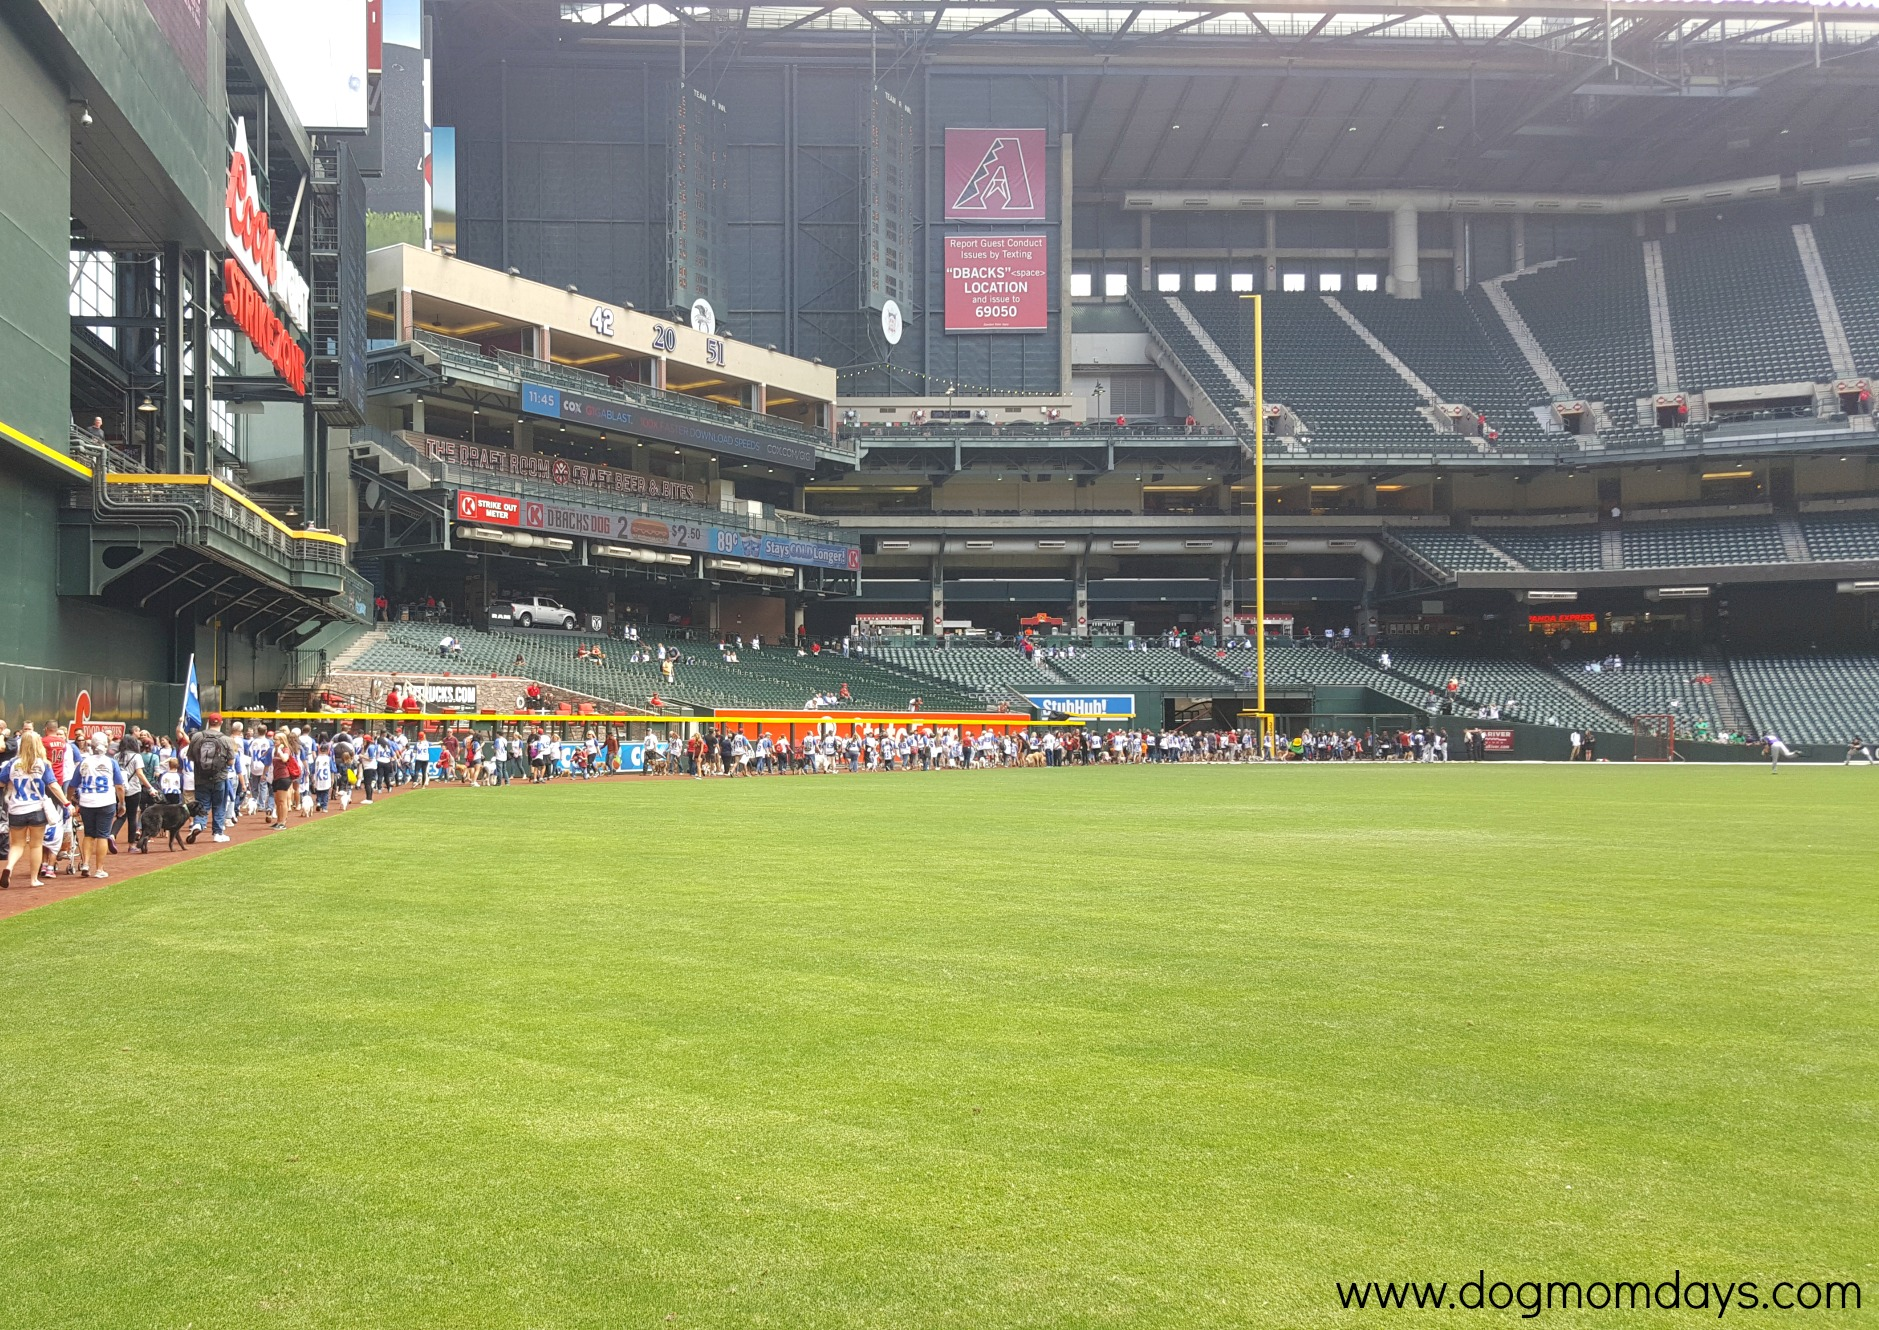 Celebrating May with 'Bark at the Park' at Chase Field - Dog